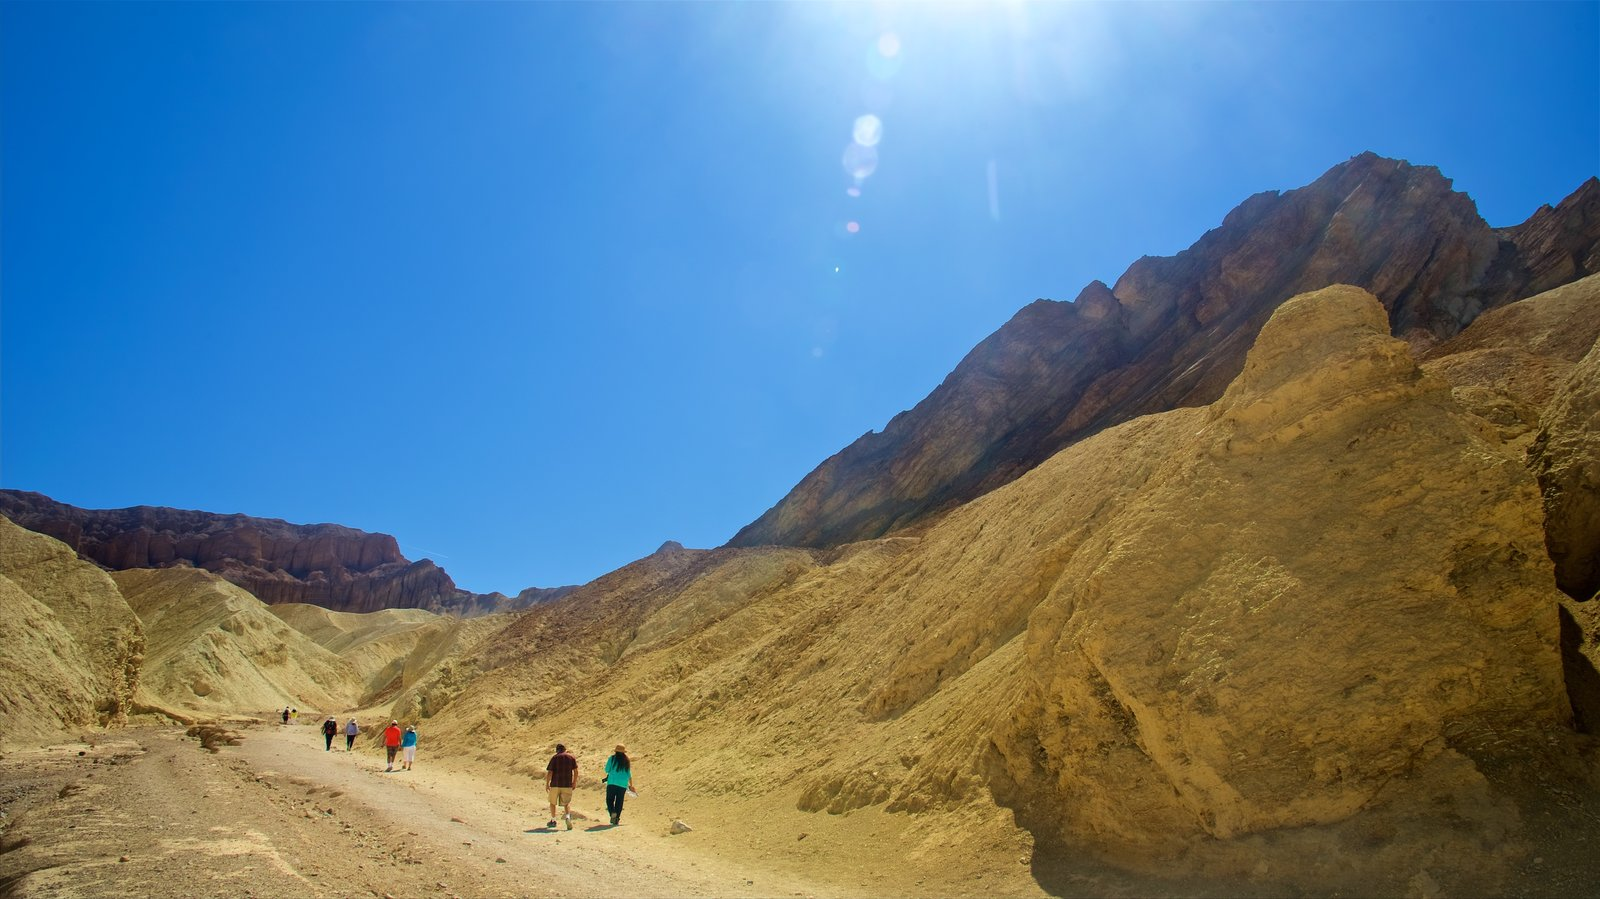 Death Valley showing desert views, tranquil scenes and hiking or walking